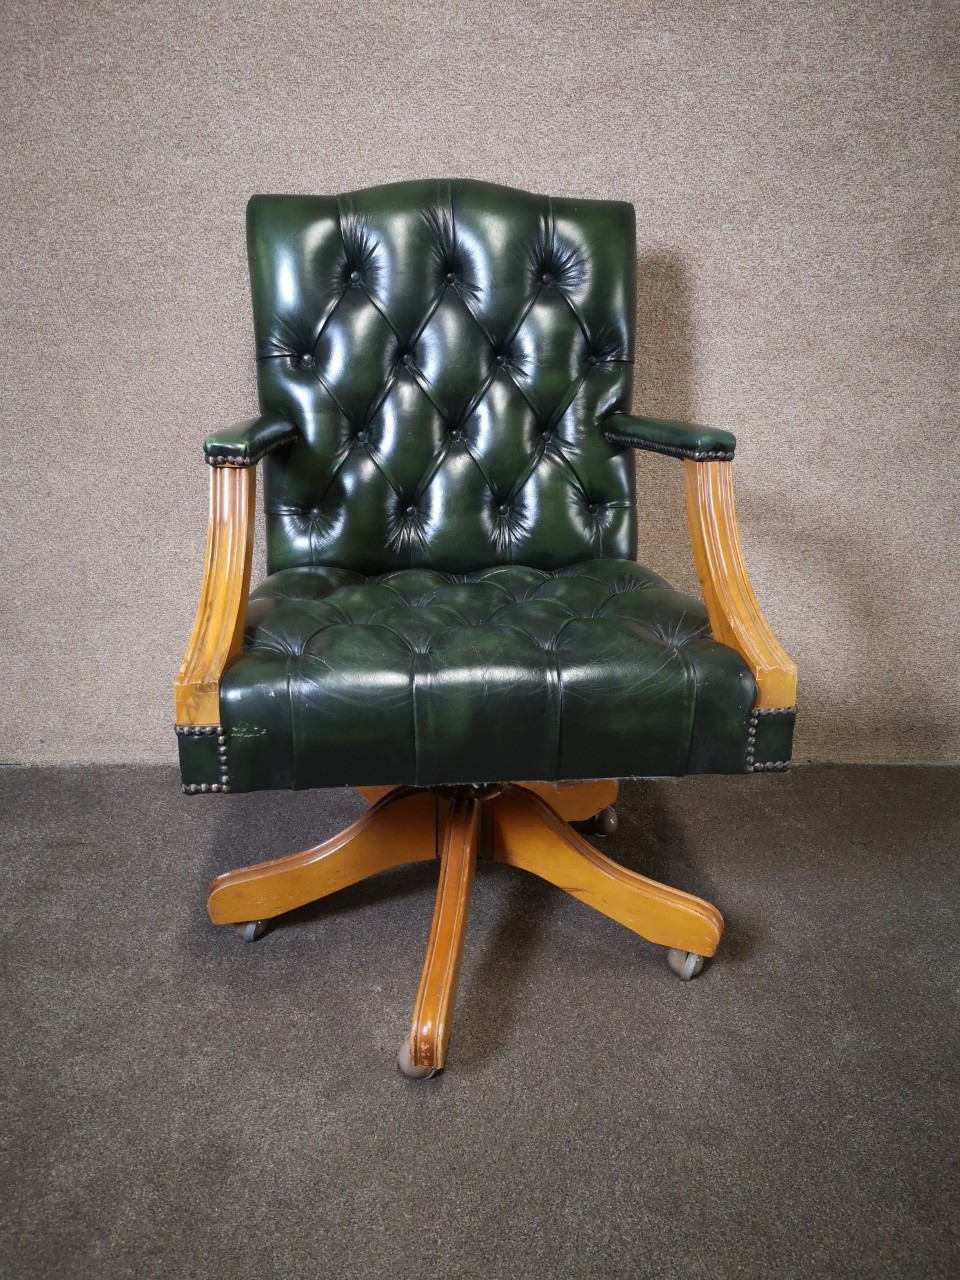 Green Chesterfield office chair画像